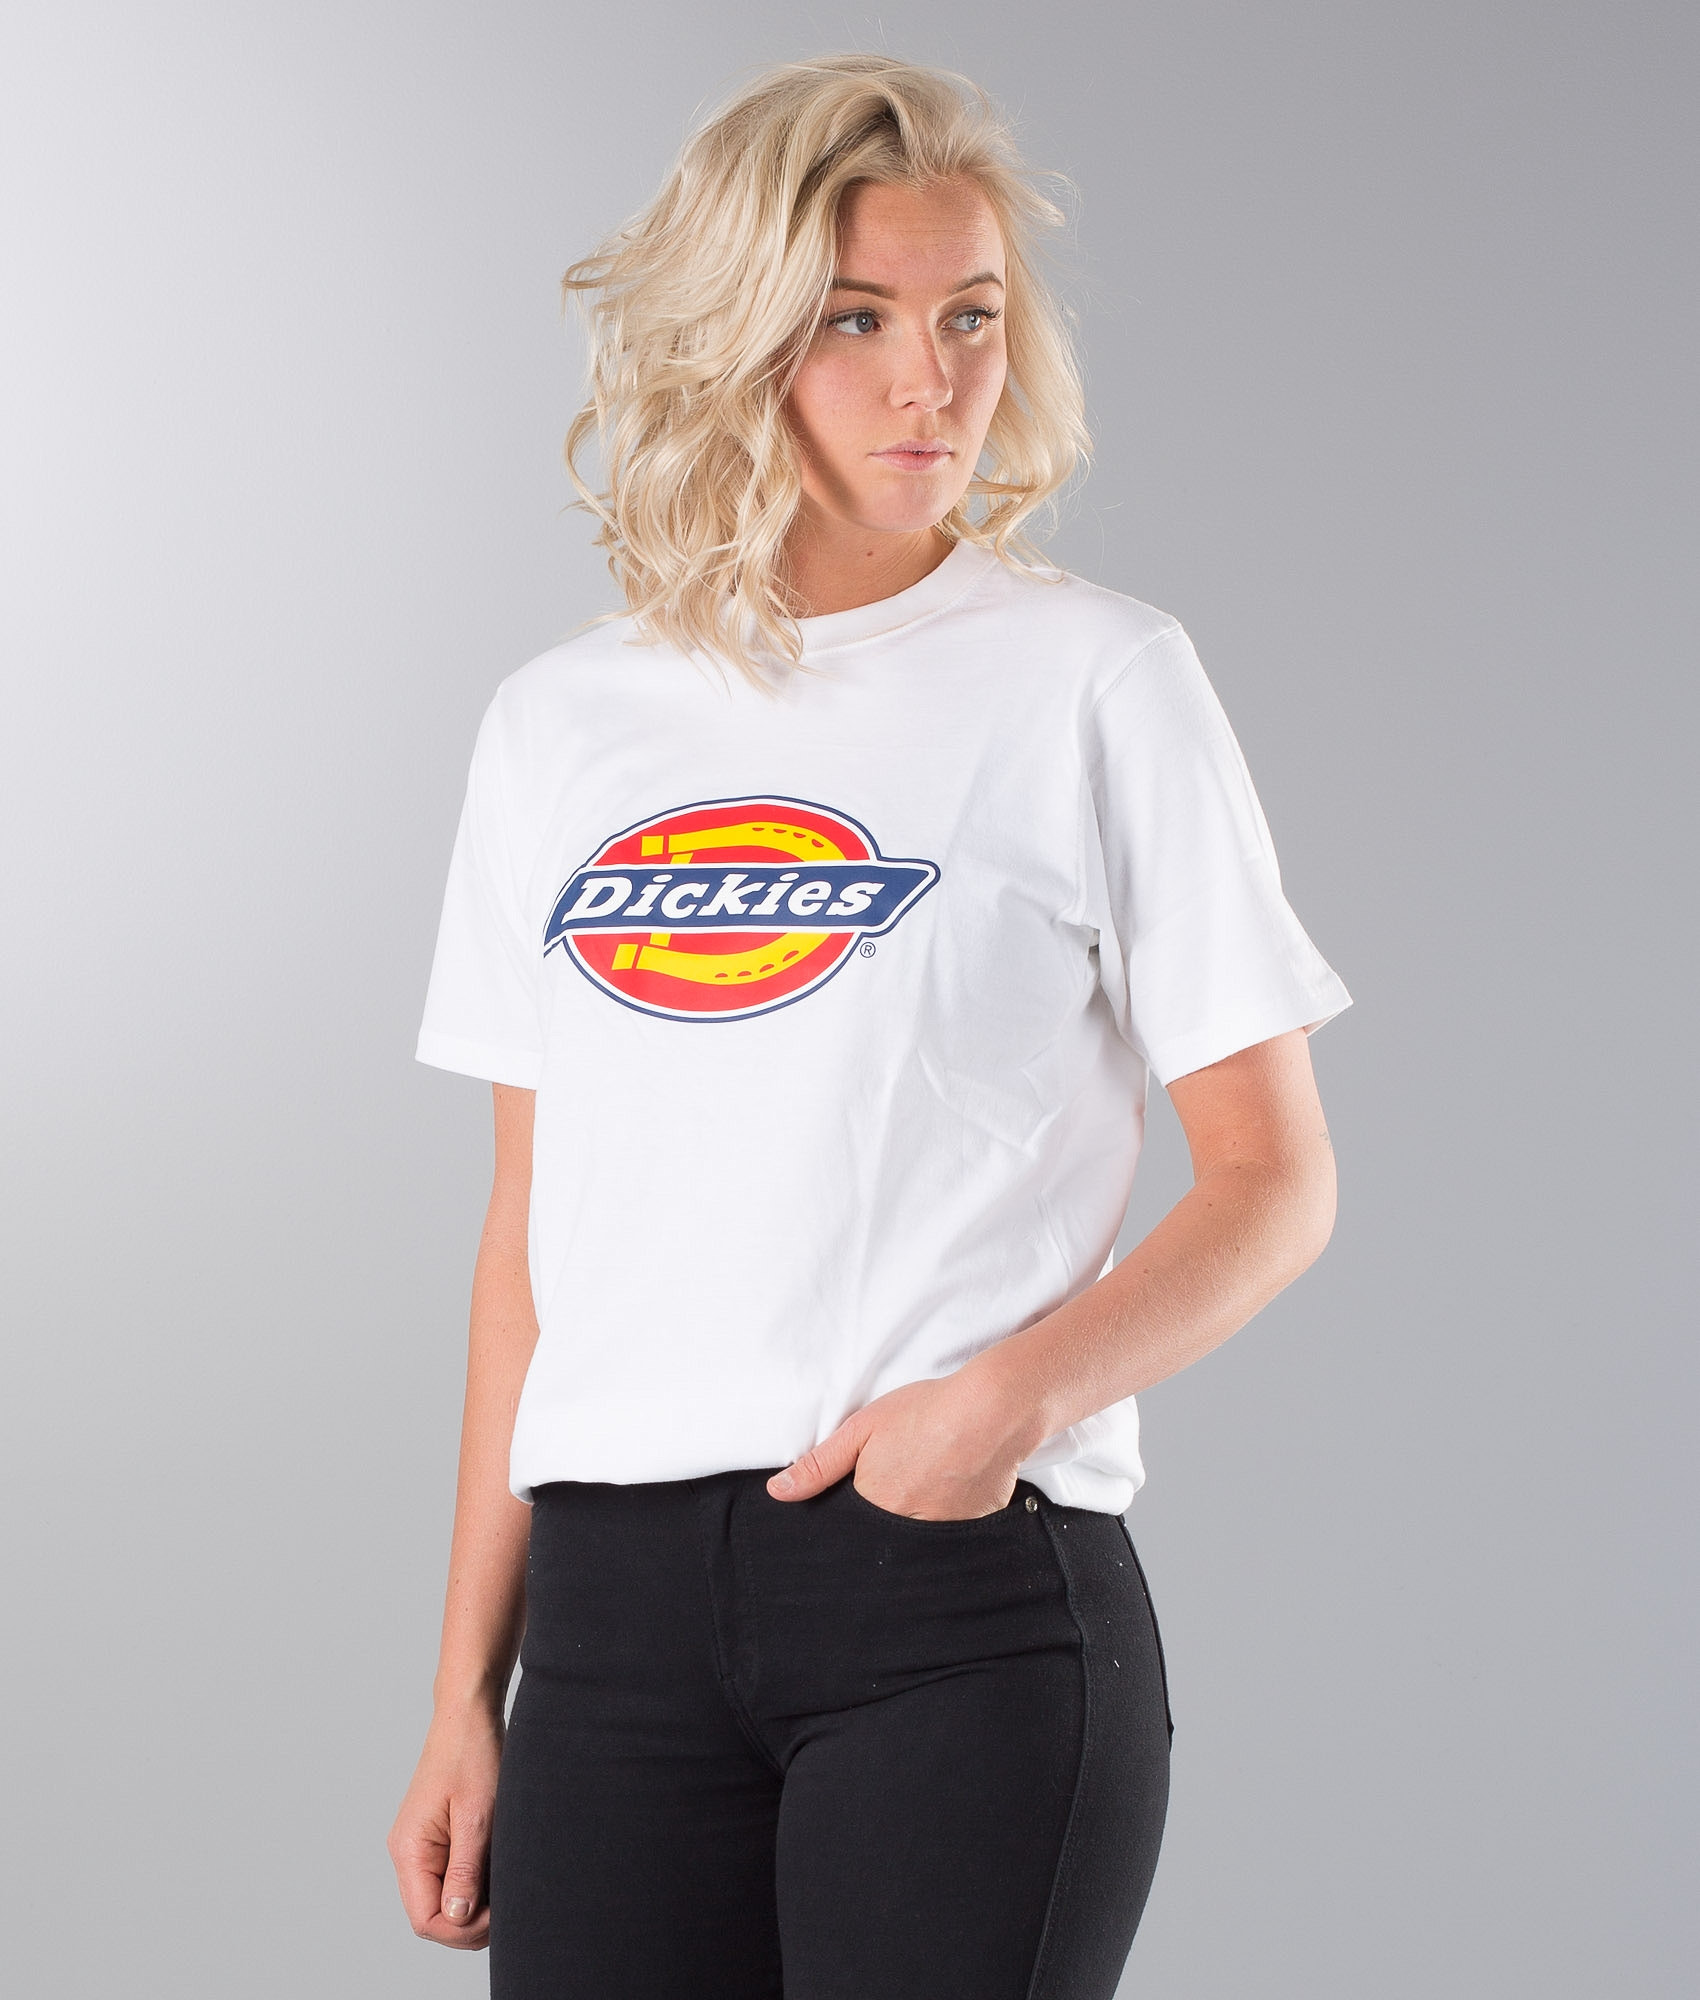 a9a0528613c49 Dickies